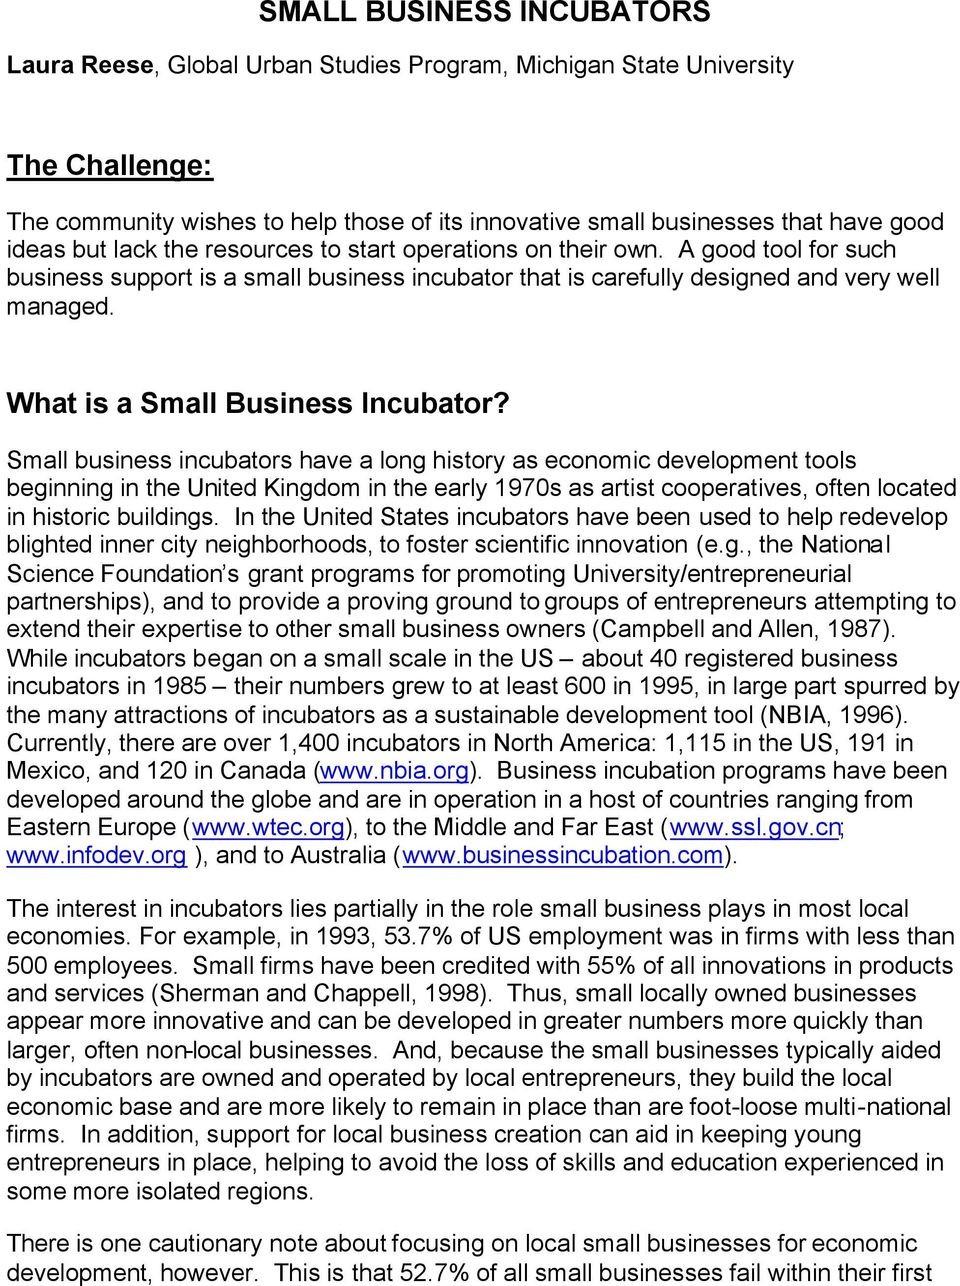 What is a Small Business Incubator?